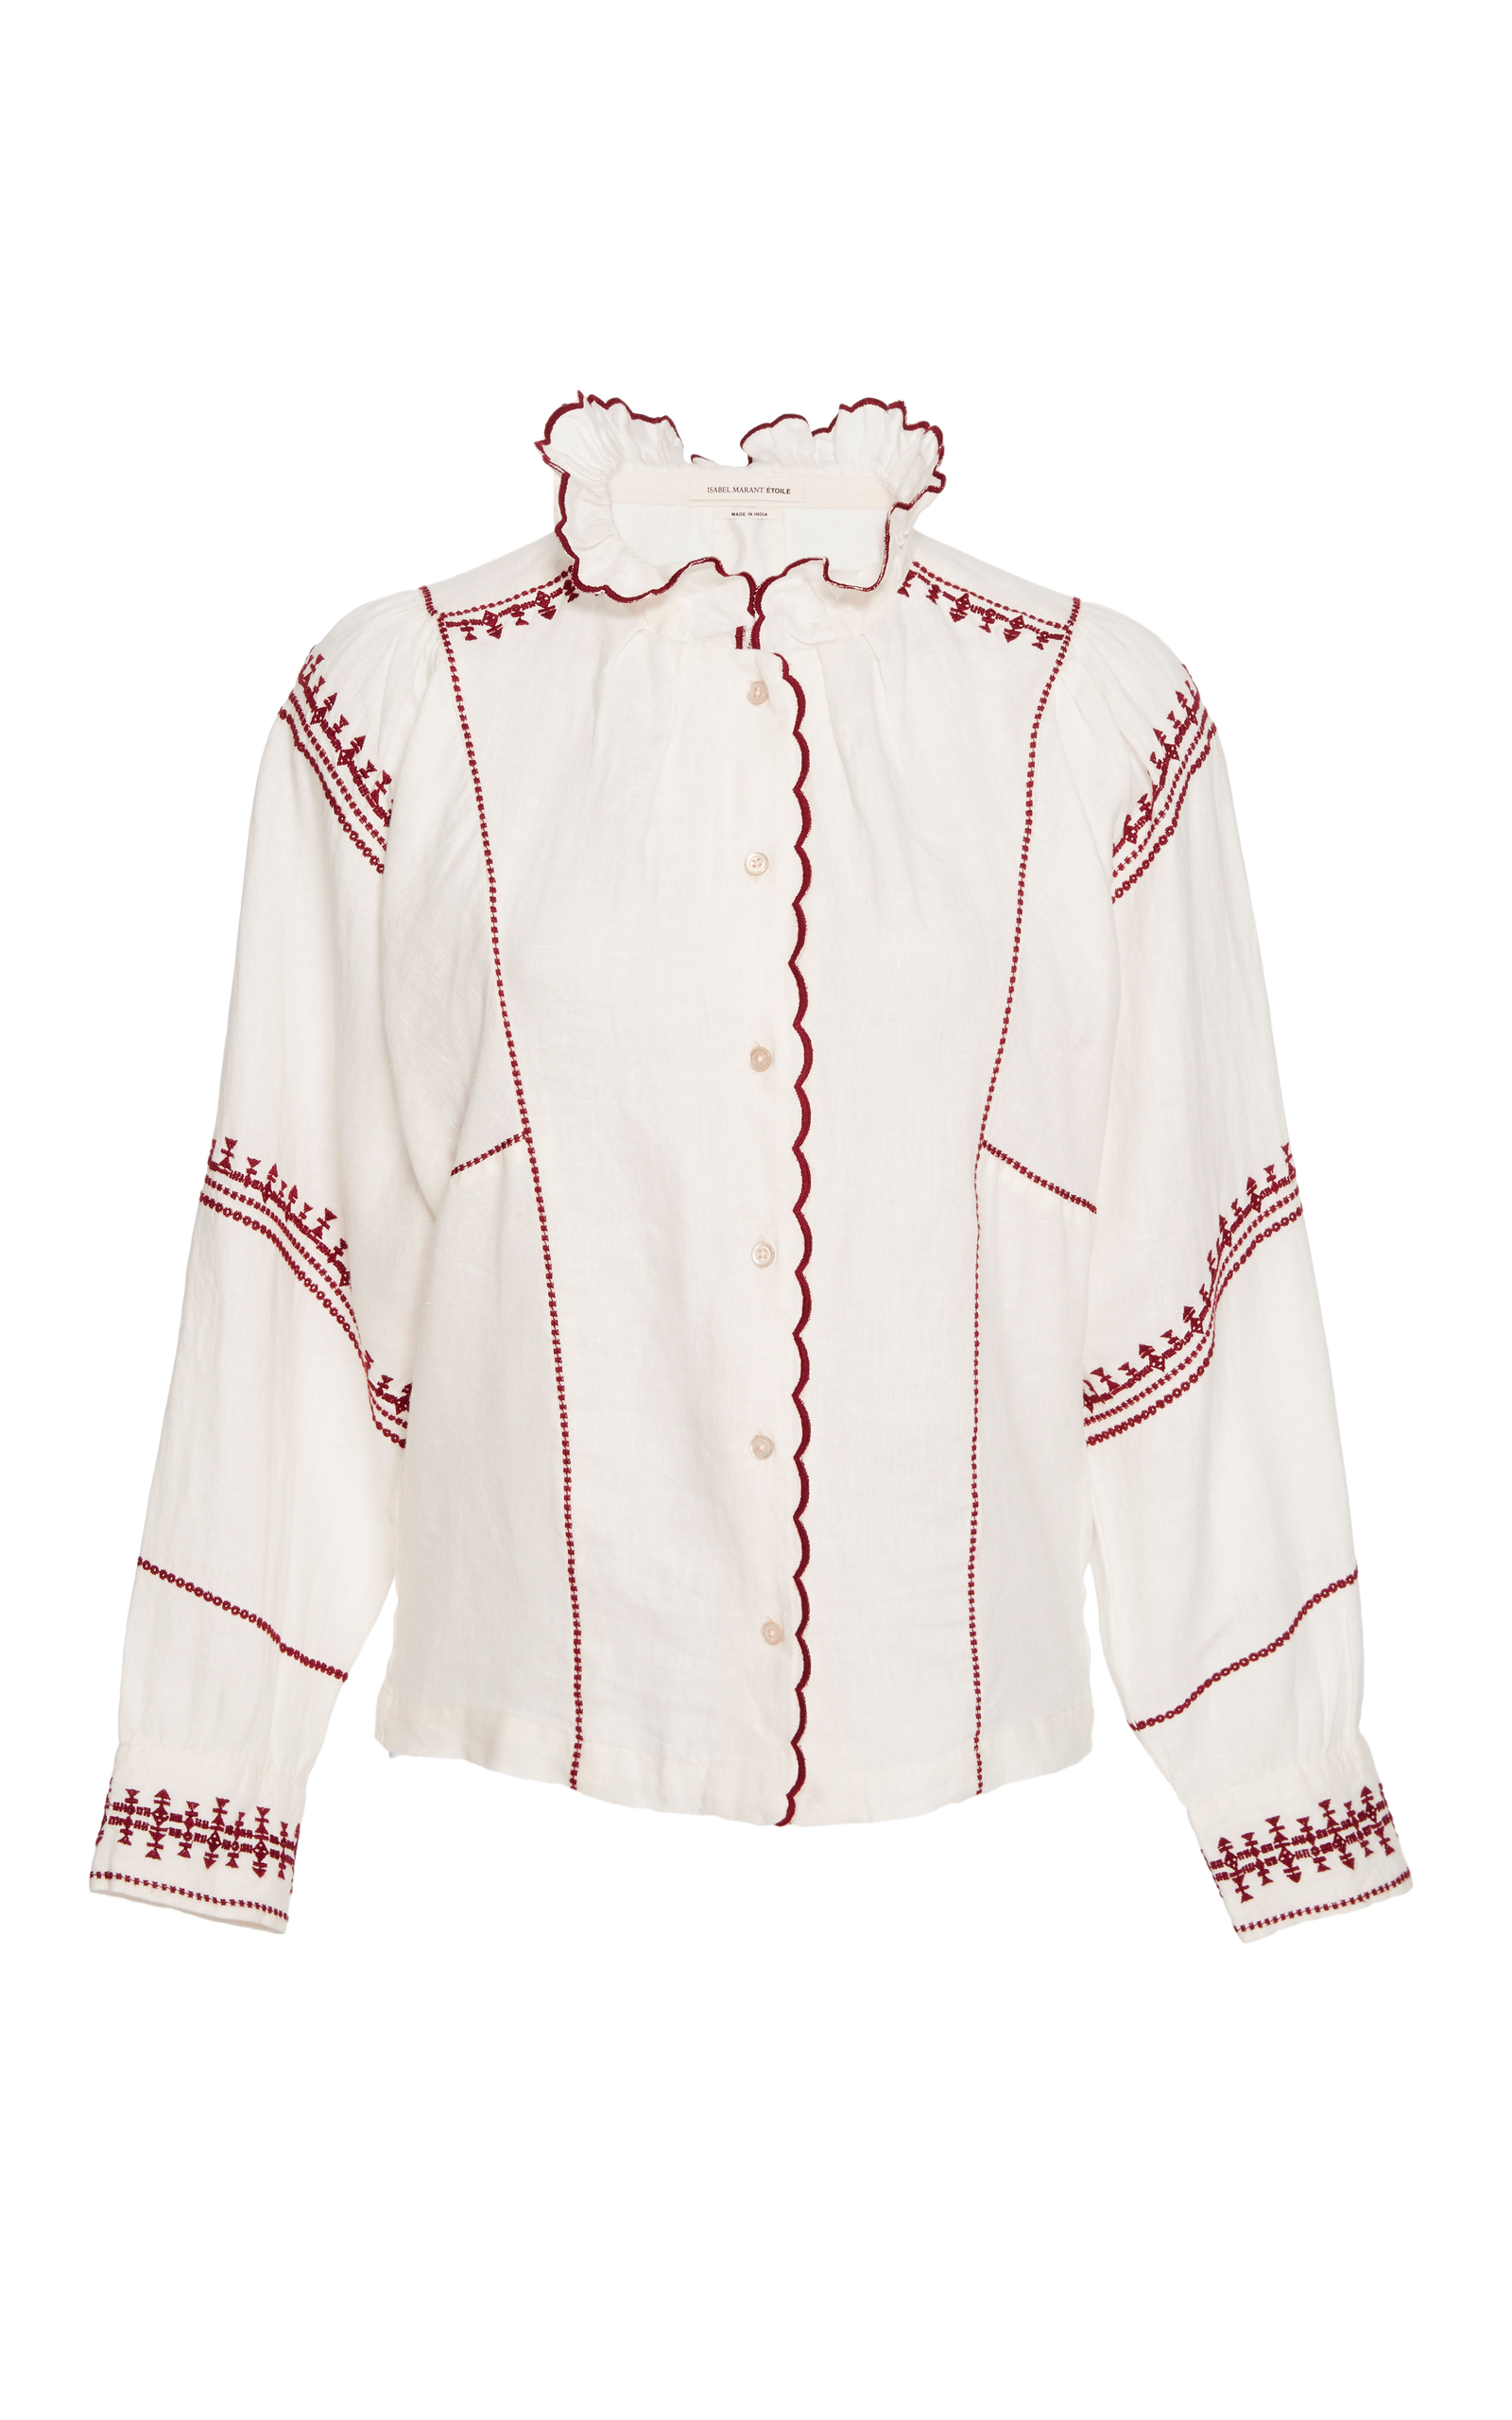 086309c10c51ec Isabel Marant ÉtoileDelphine Ruffle Mock Neck Shirt. CLOSE. Loading